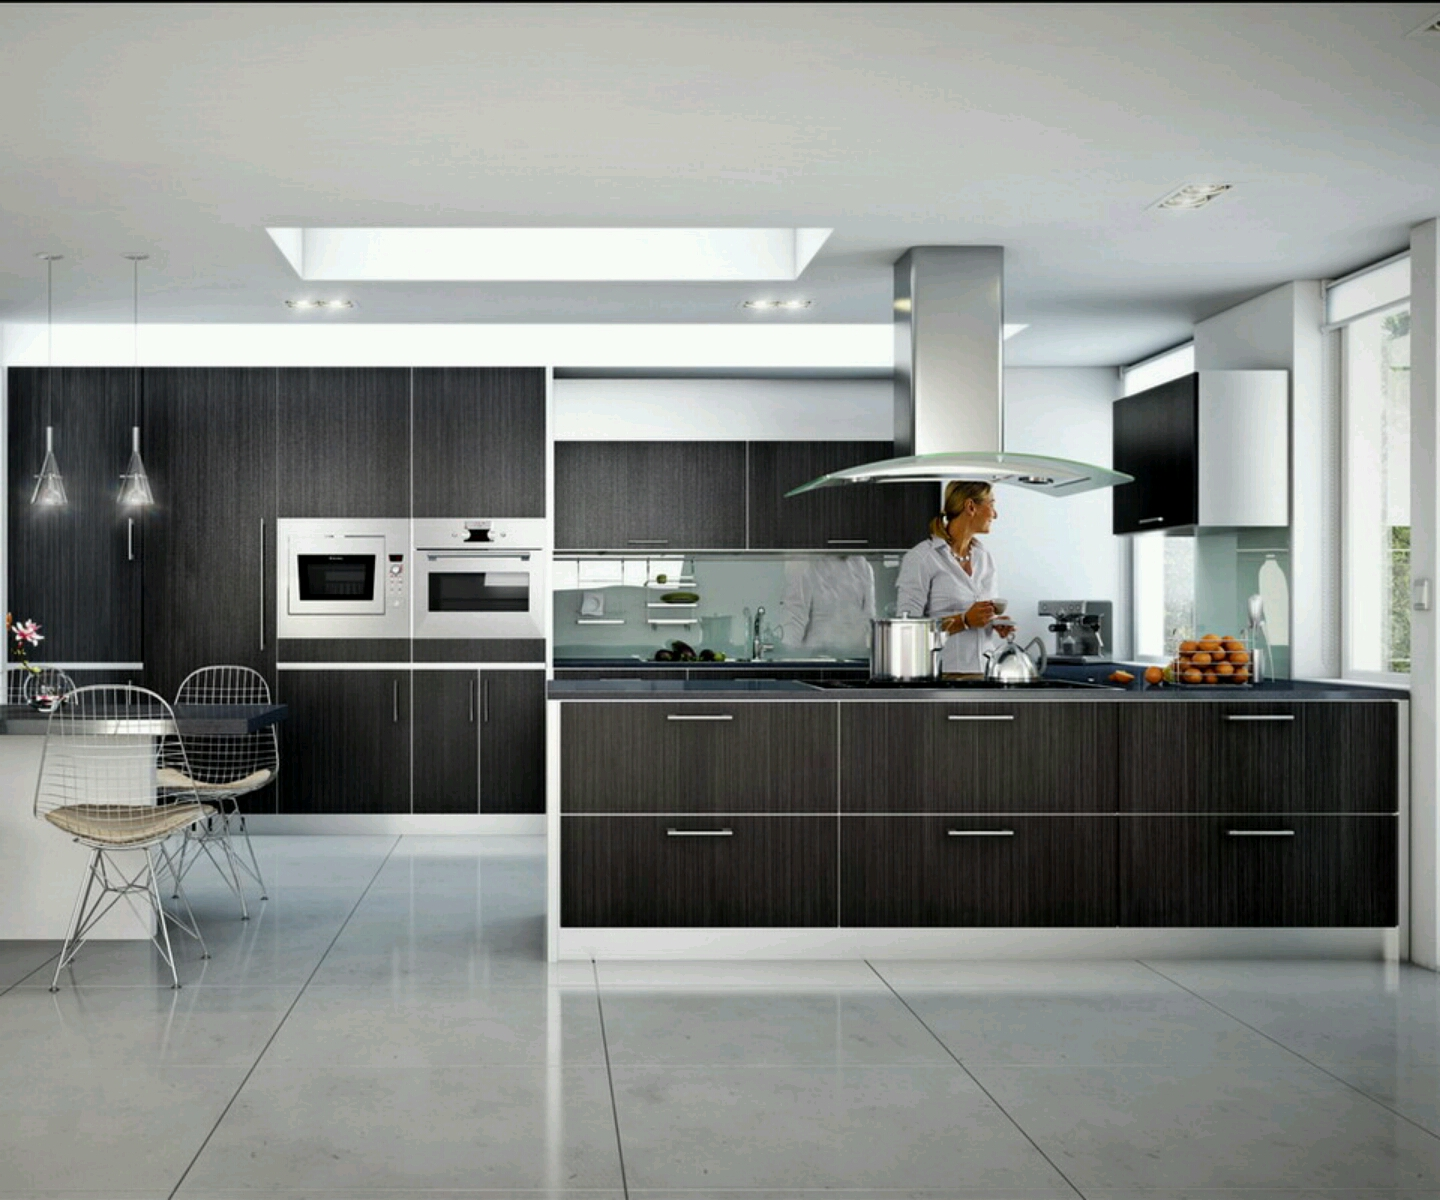 Contemporary Kitchen Vs Modern Kitchen: 30 Modern Kitchen Design Ideas